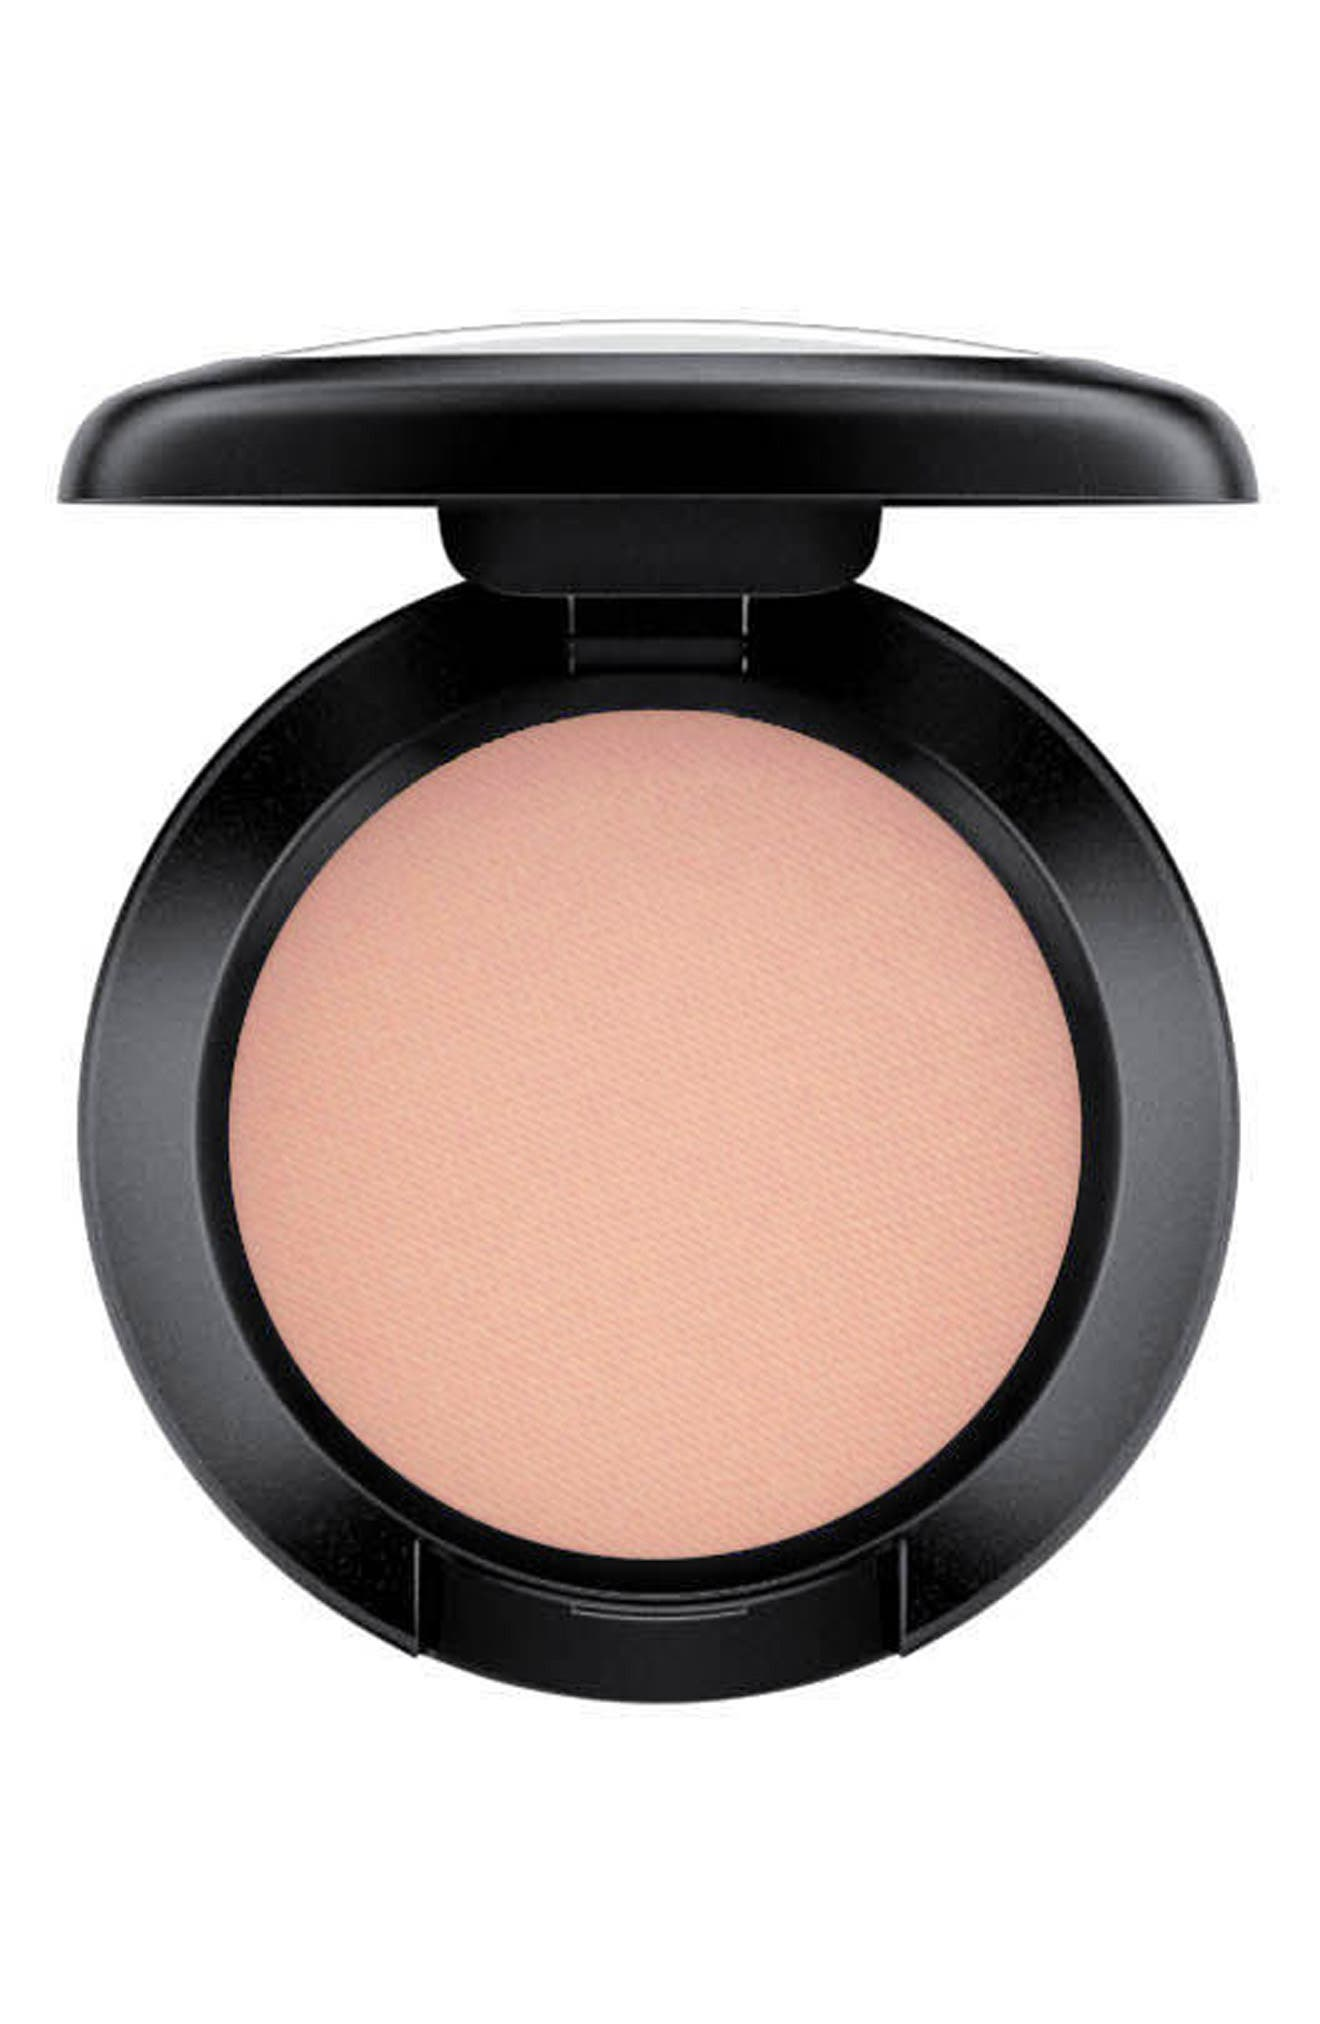 What it is: A matte-finish eyeshadow that provides rich, saturated color without shine in an even, easy-to-blend, long-lasting formula. What it does: MAC Eyeshadow is a highly pigmented pressed formula that delivers high color payoff with a single swipe. The revamped matte-finish formula is long-lasting and can be used wet or dry. How to use: Apply over your eye area including both your lid and crease with an eye shader brush, using a pressing